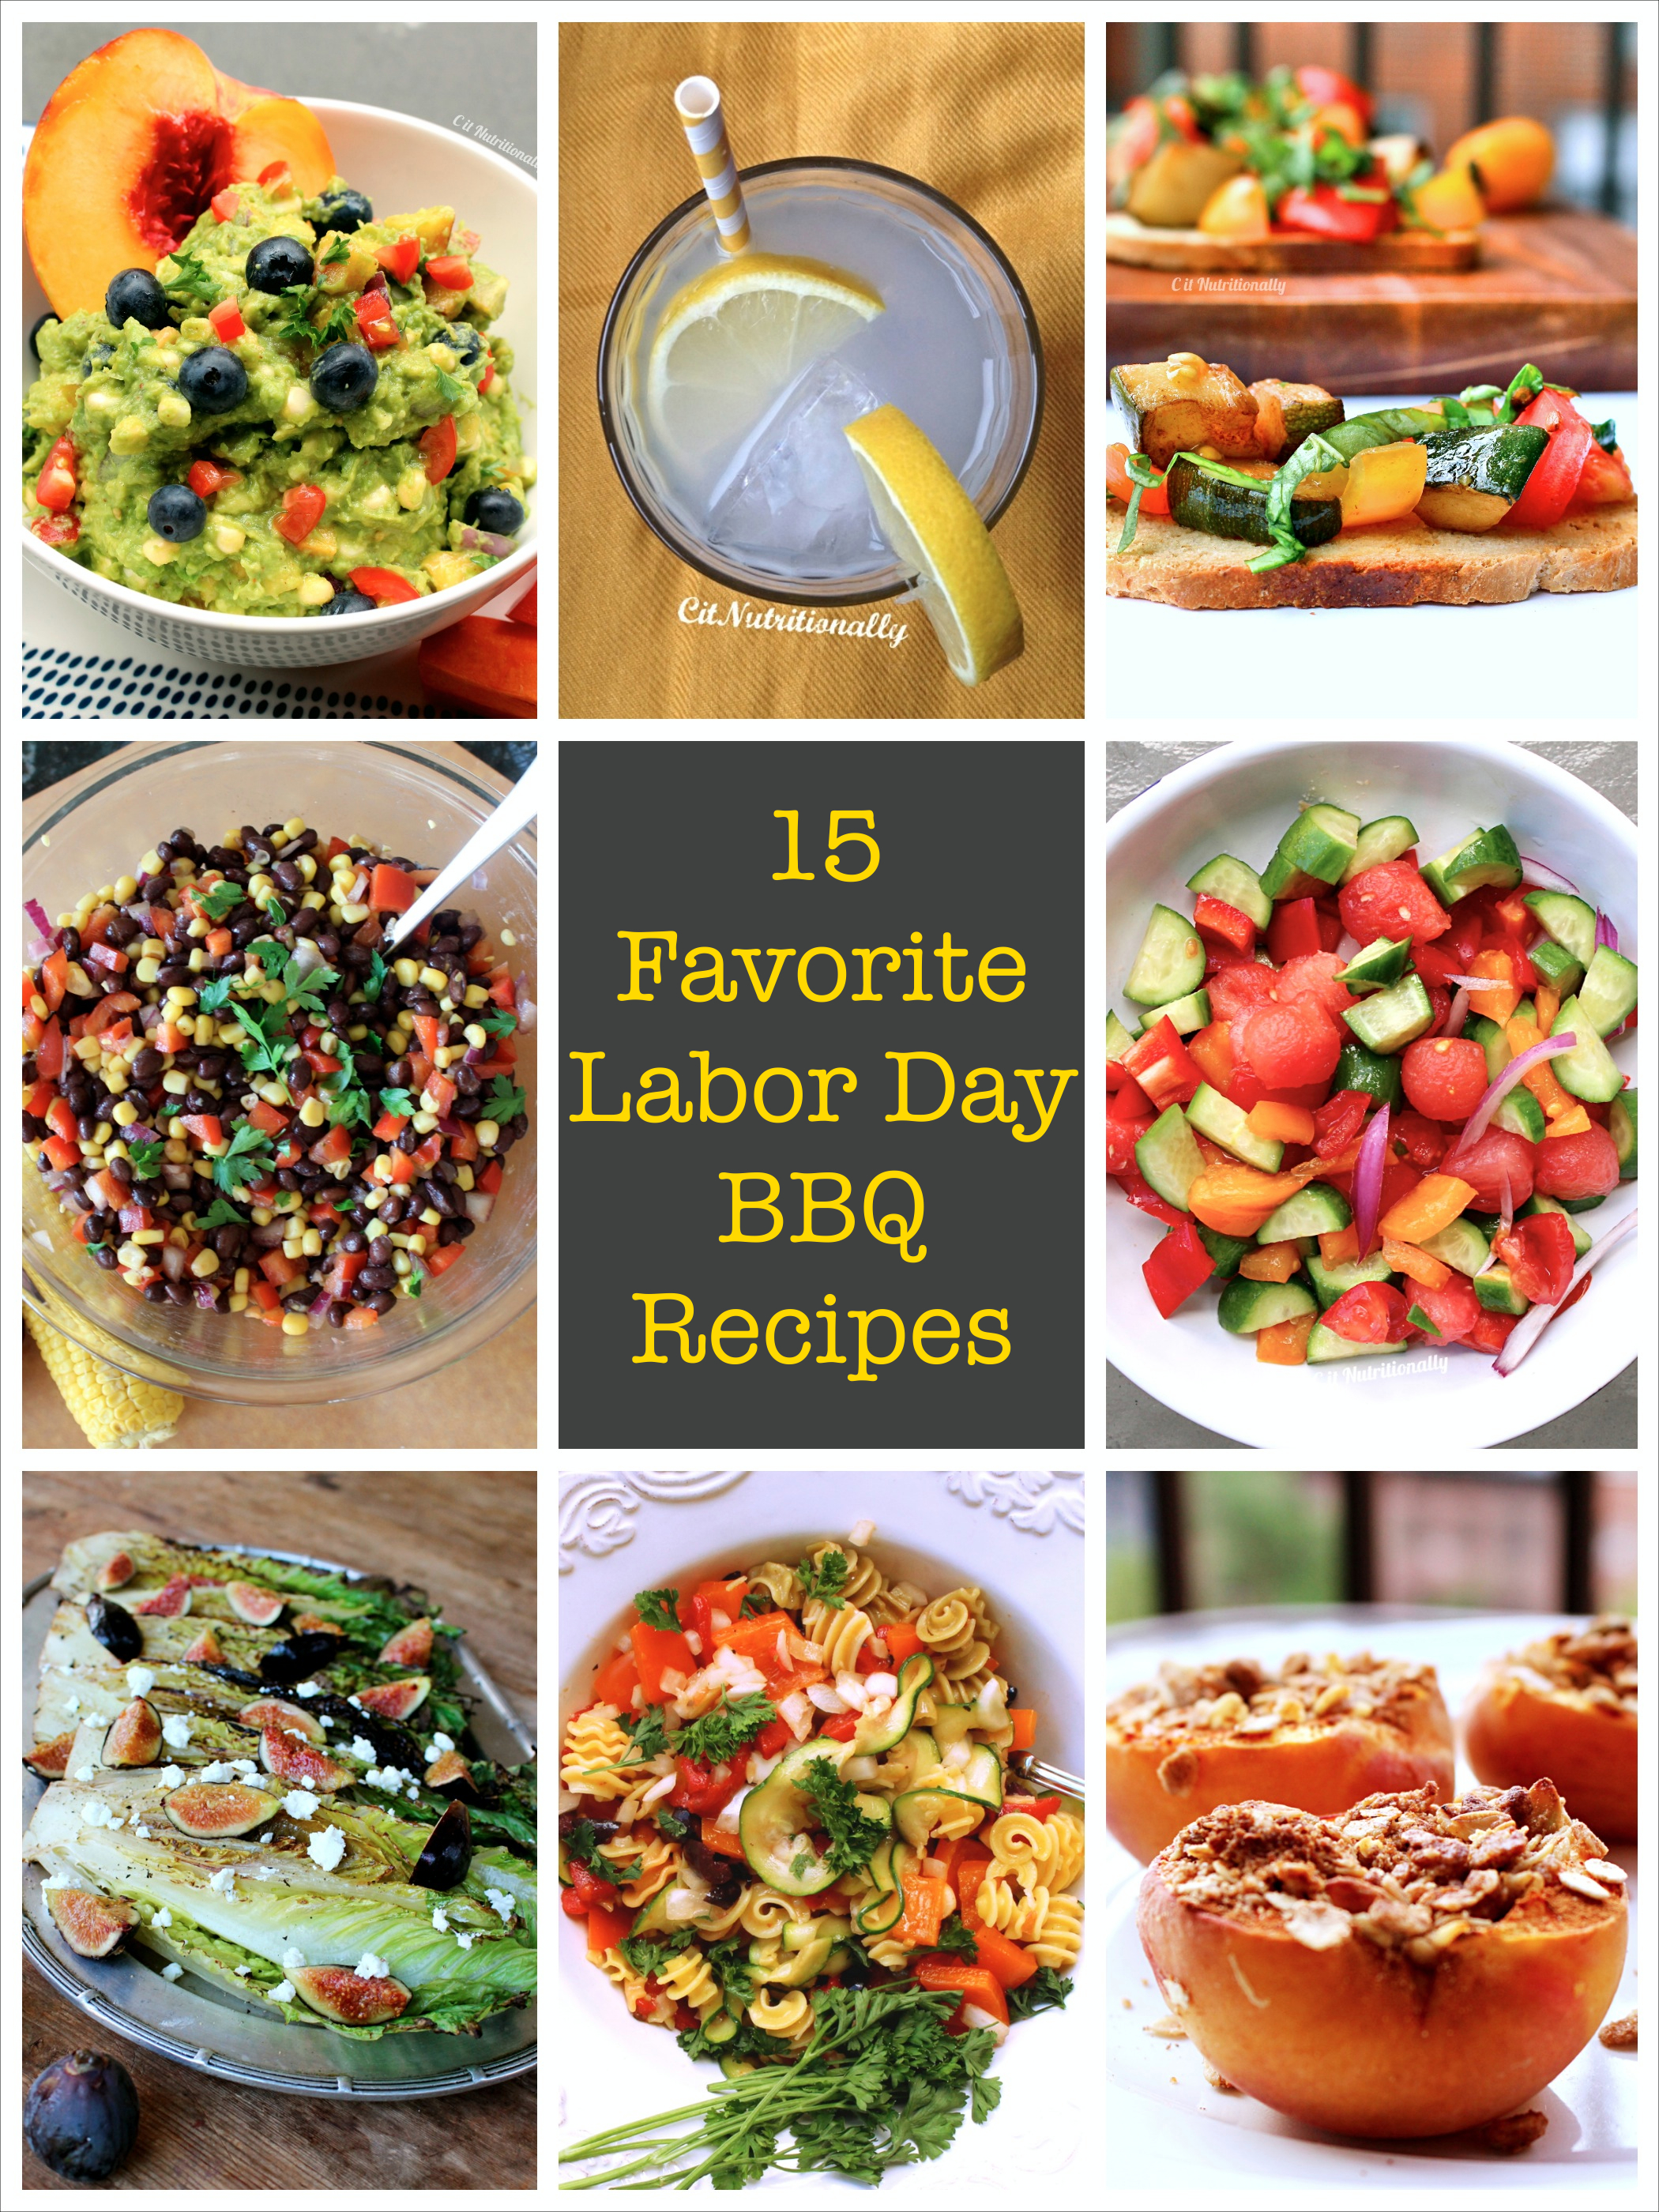 my 15 favorite labor day bbq recipes - c it nutritionally